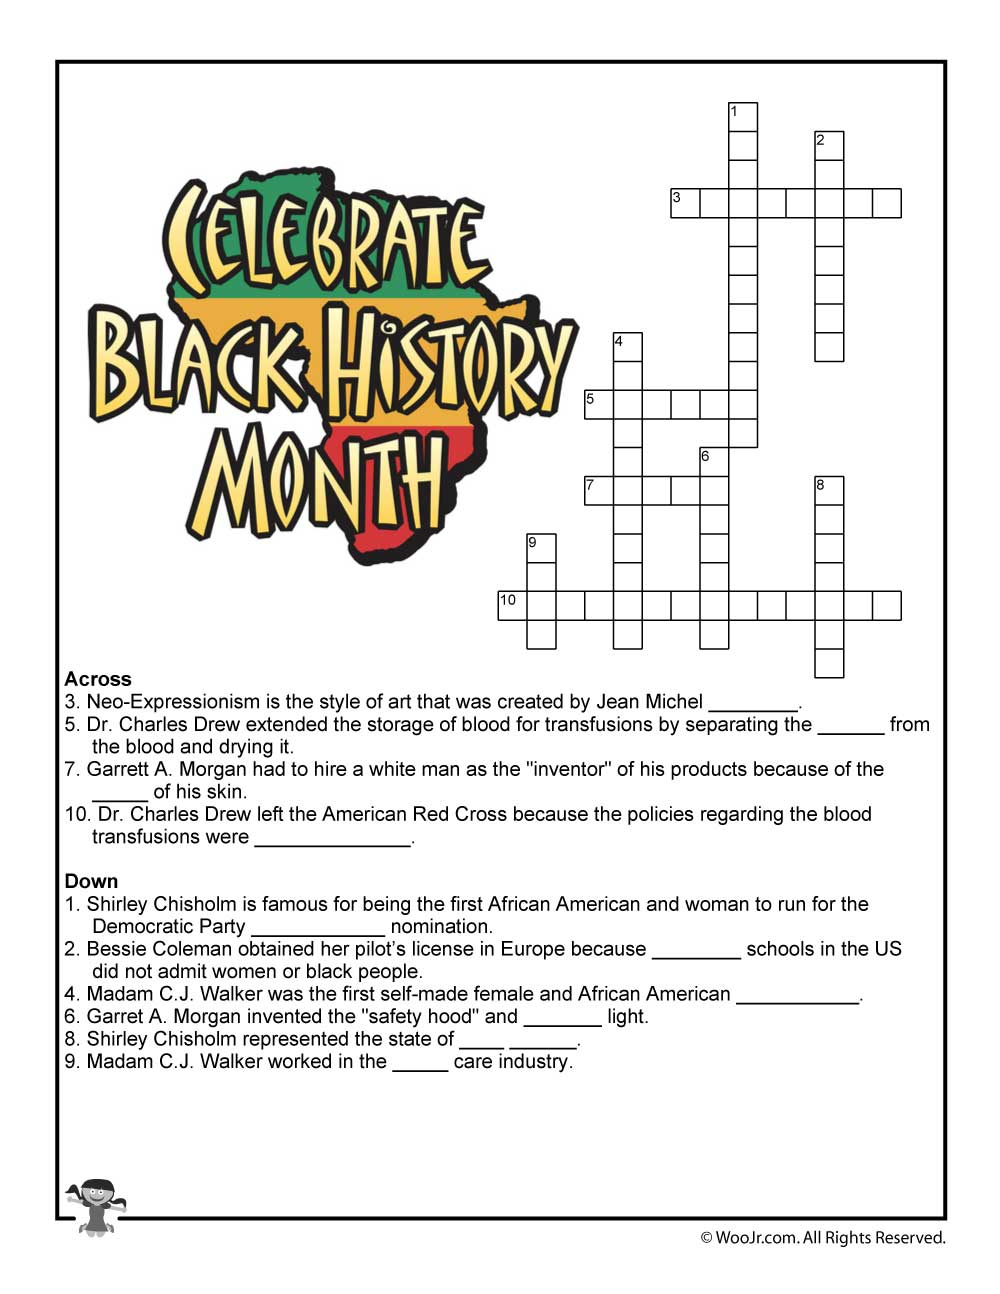 Black History Month Crossword Puzzle Worksheet | Woo! Jr. Kids - Printable History Puzzles